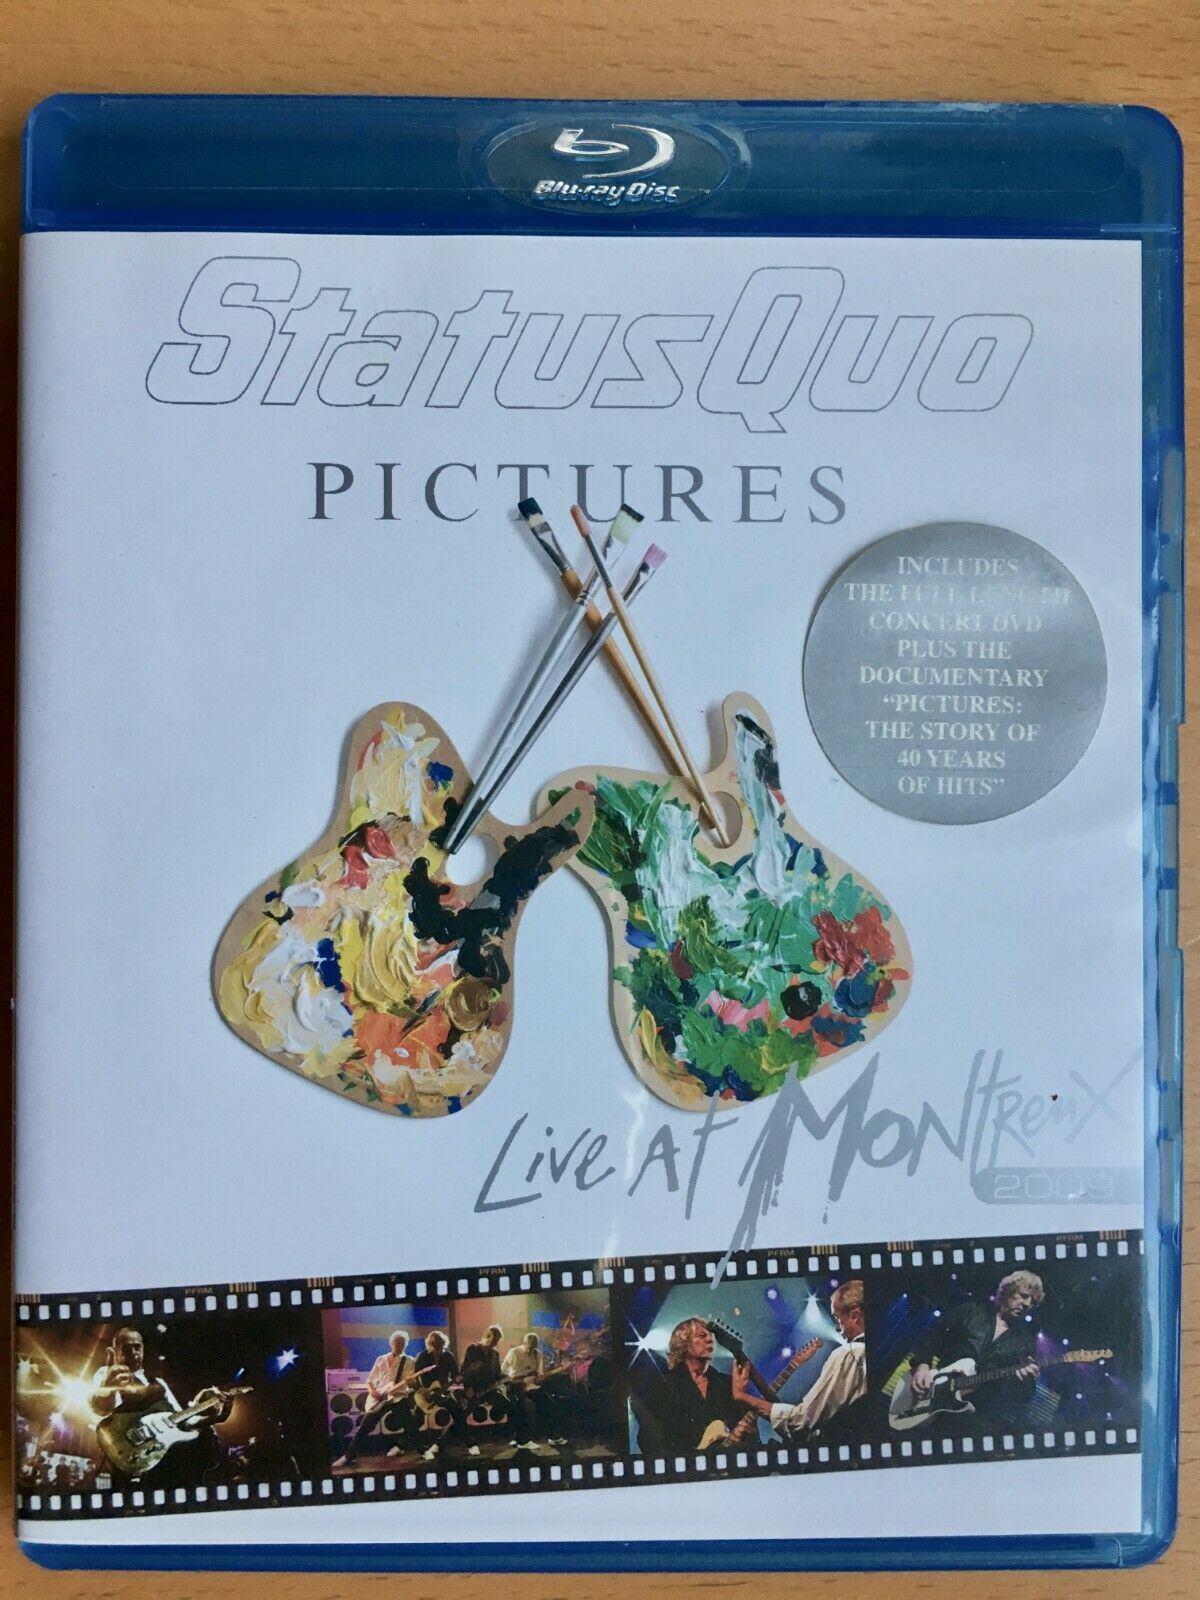 801213334797 Pictures Live at Montreux 2009 With Status Quo Blu-ray Region 1